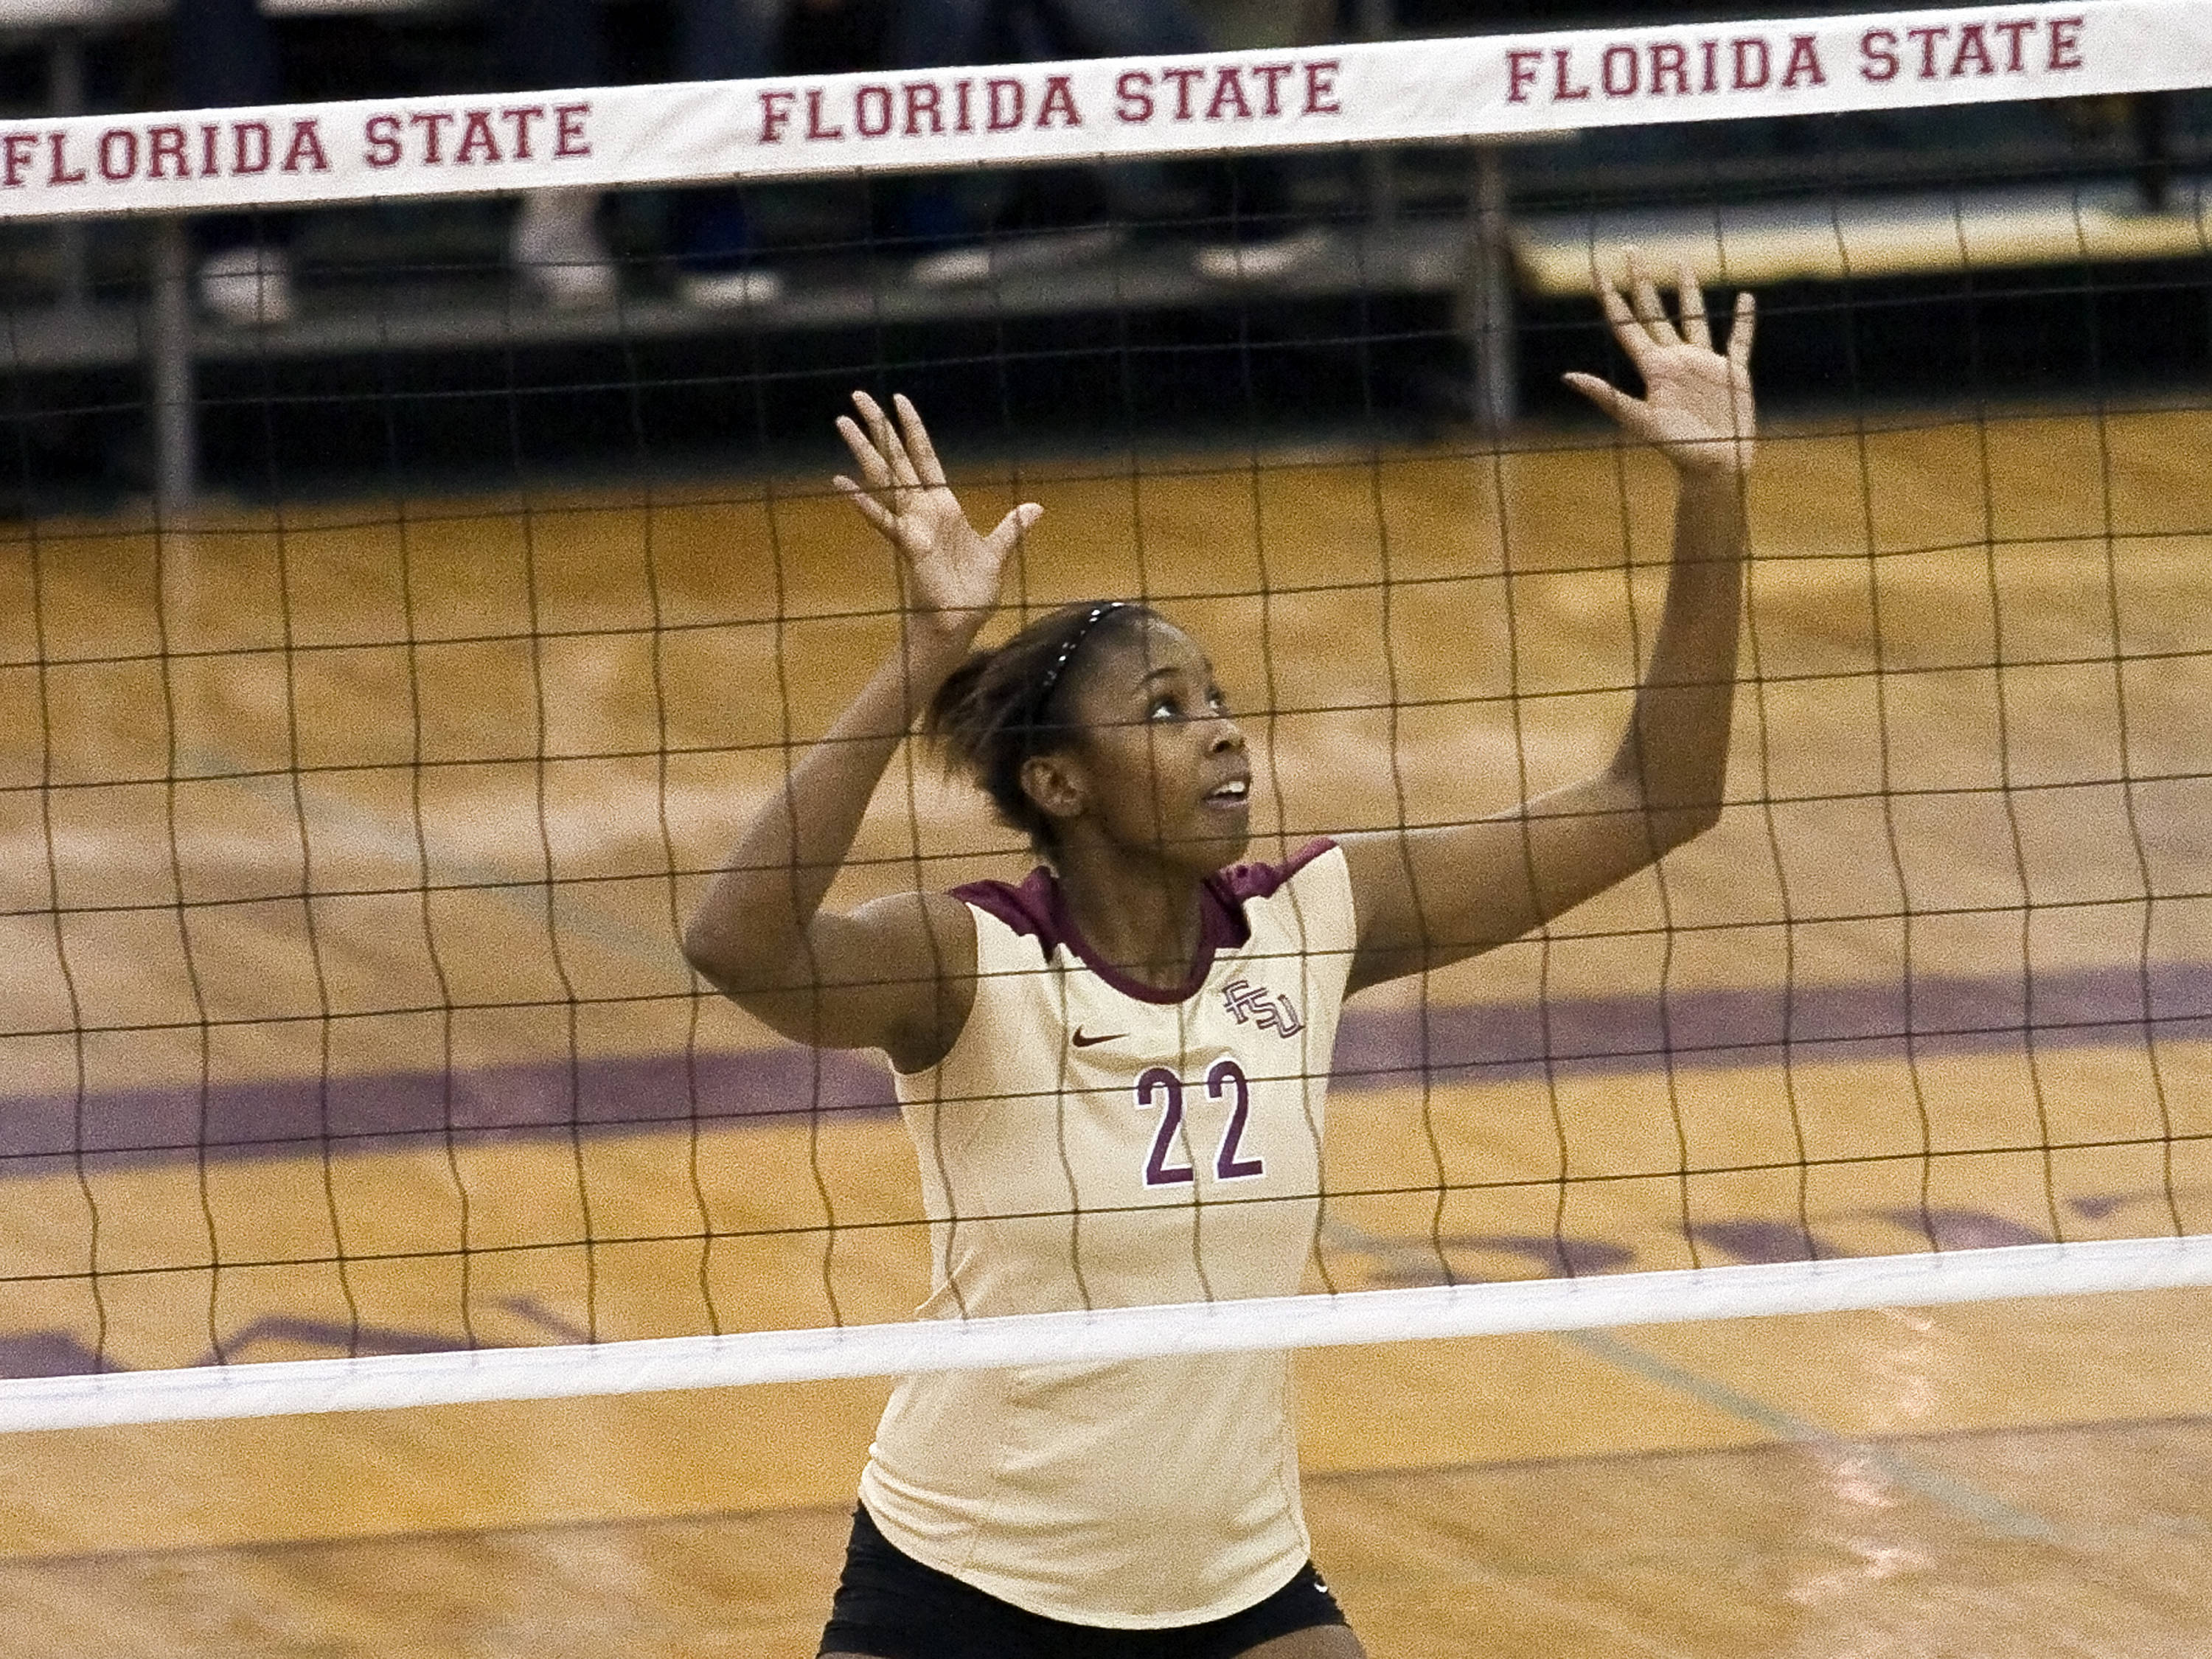 Sareea Freeman (22), FSU vs Cincinnati, 12/03/2011